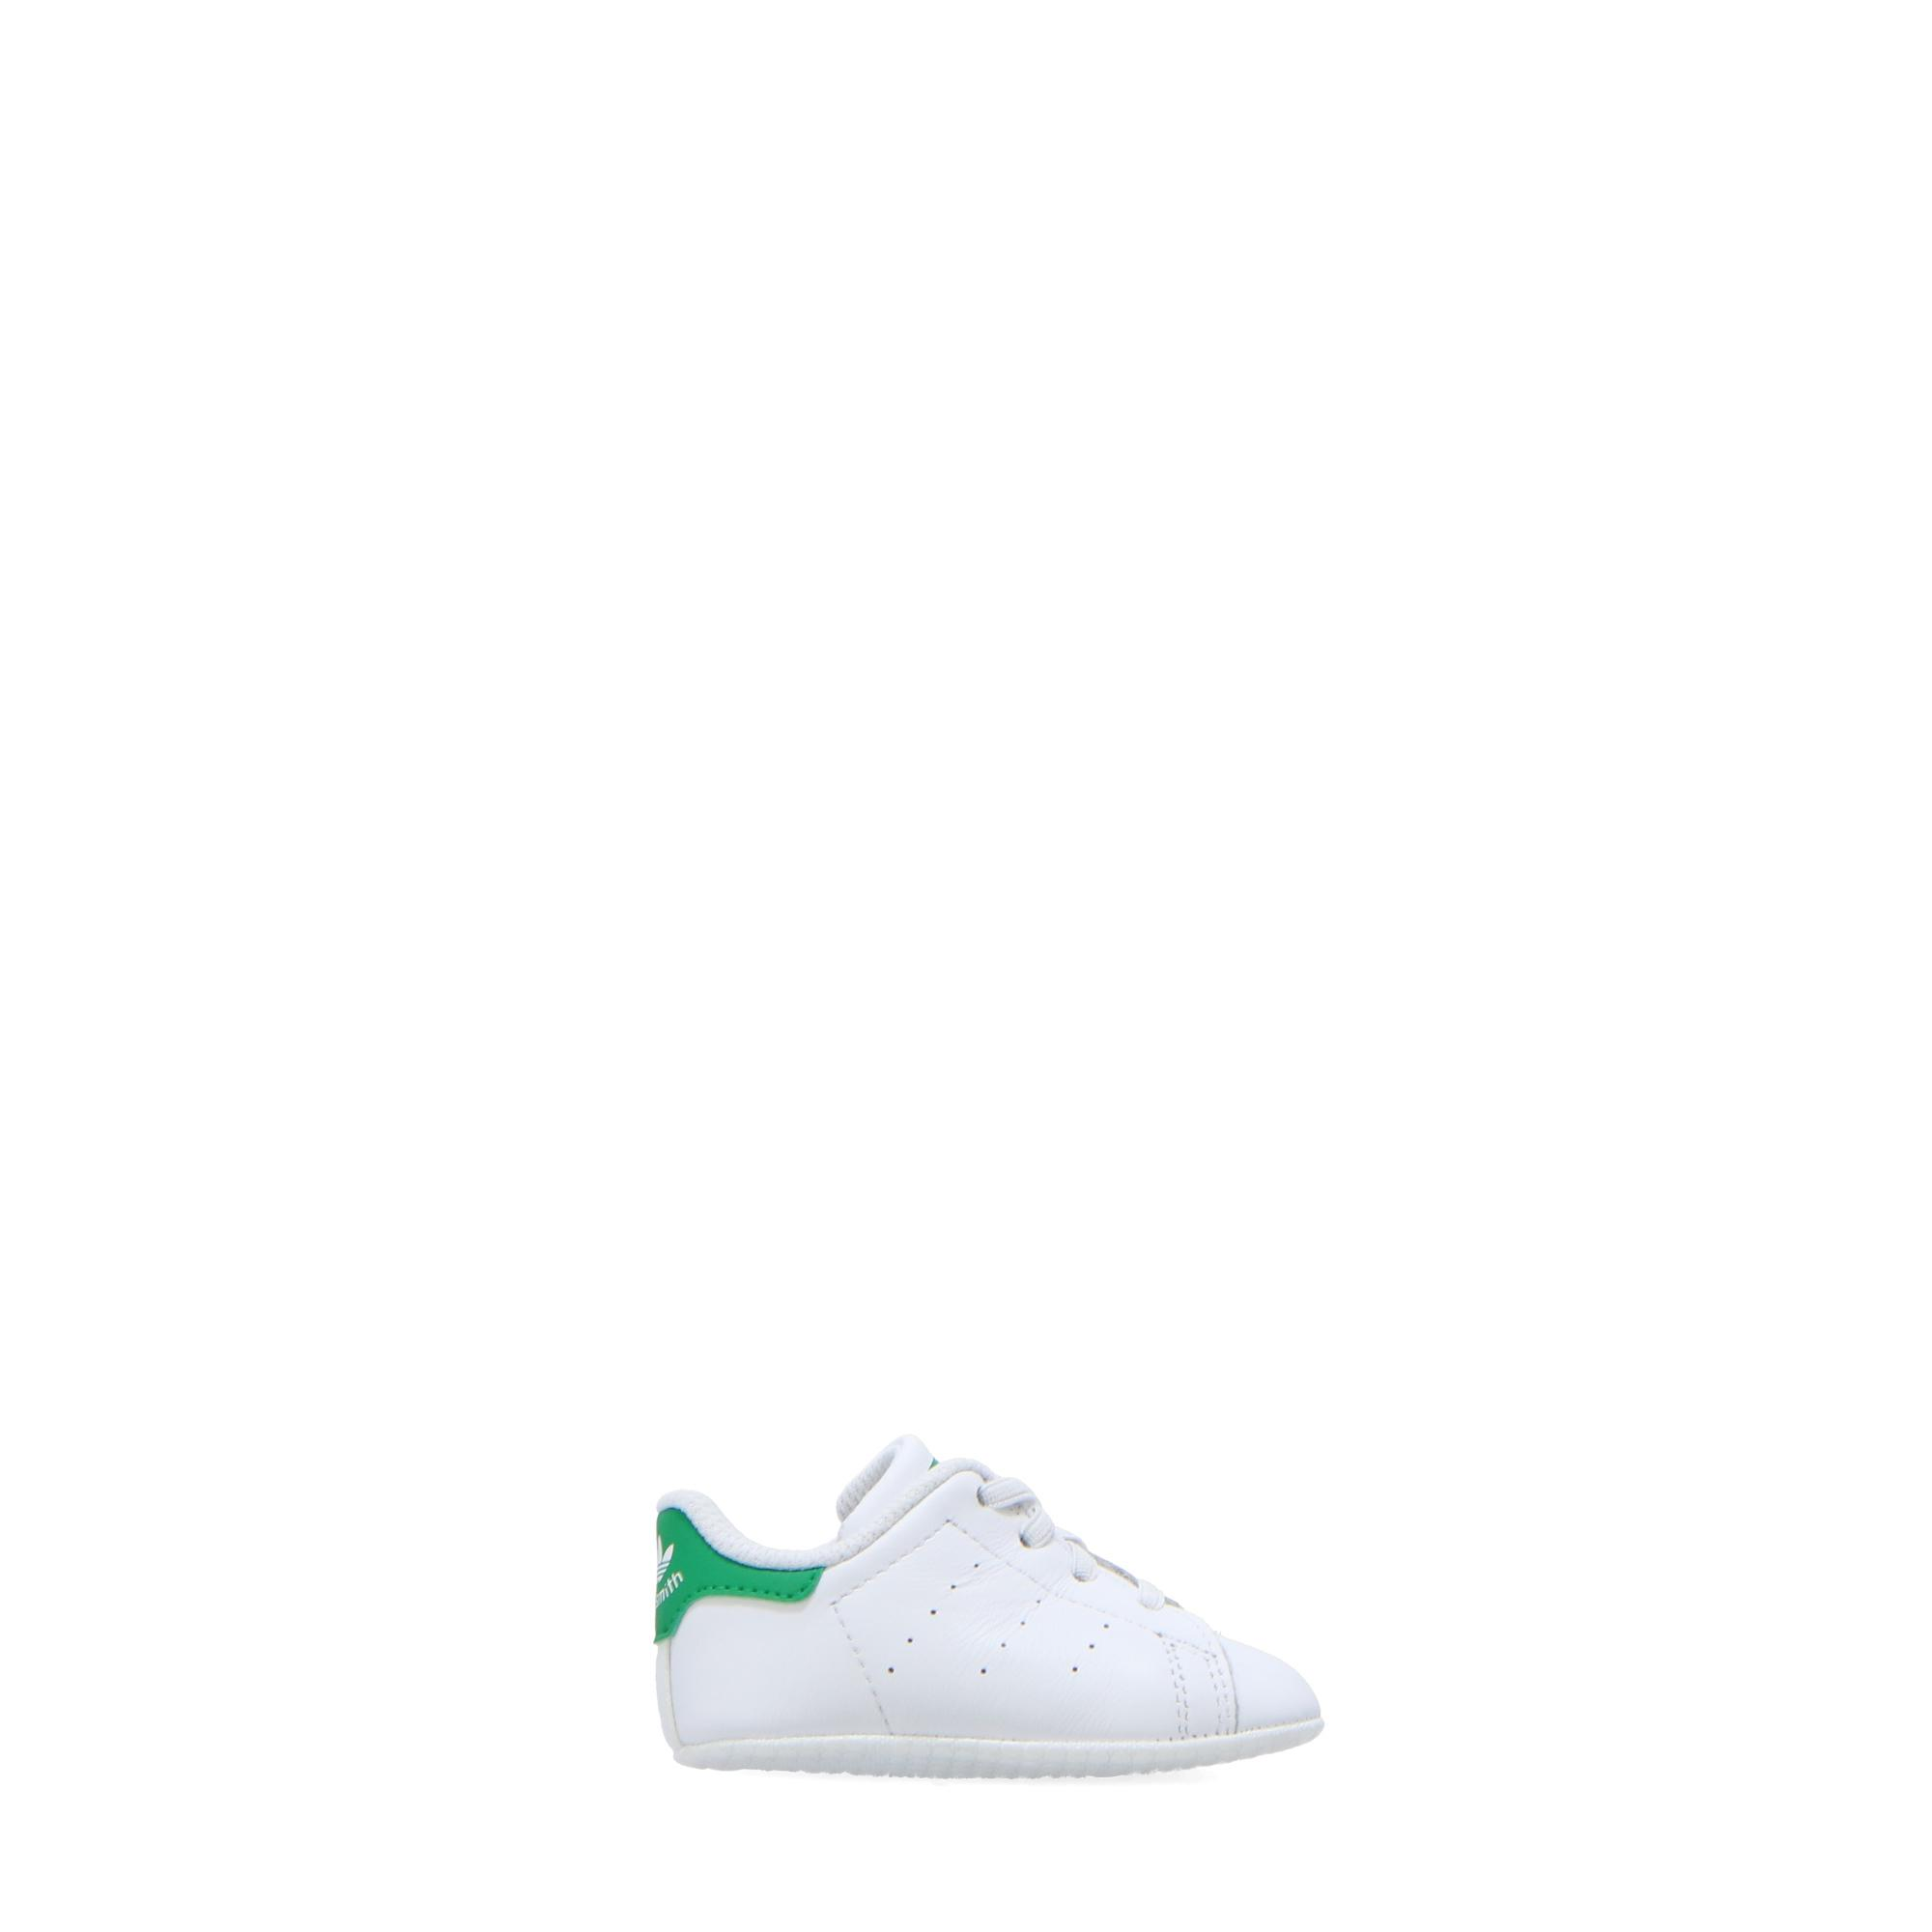 Adidas Stan Smith Crib - Kids<br/> White white green